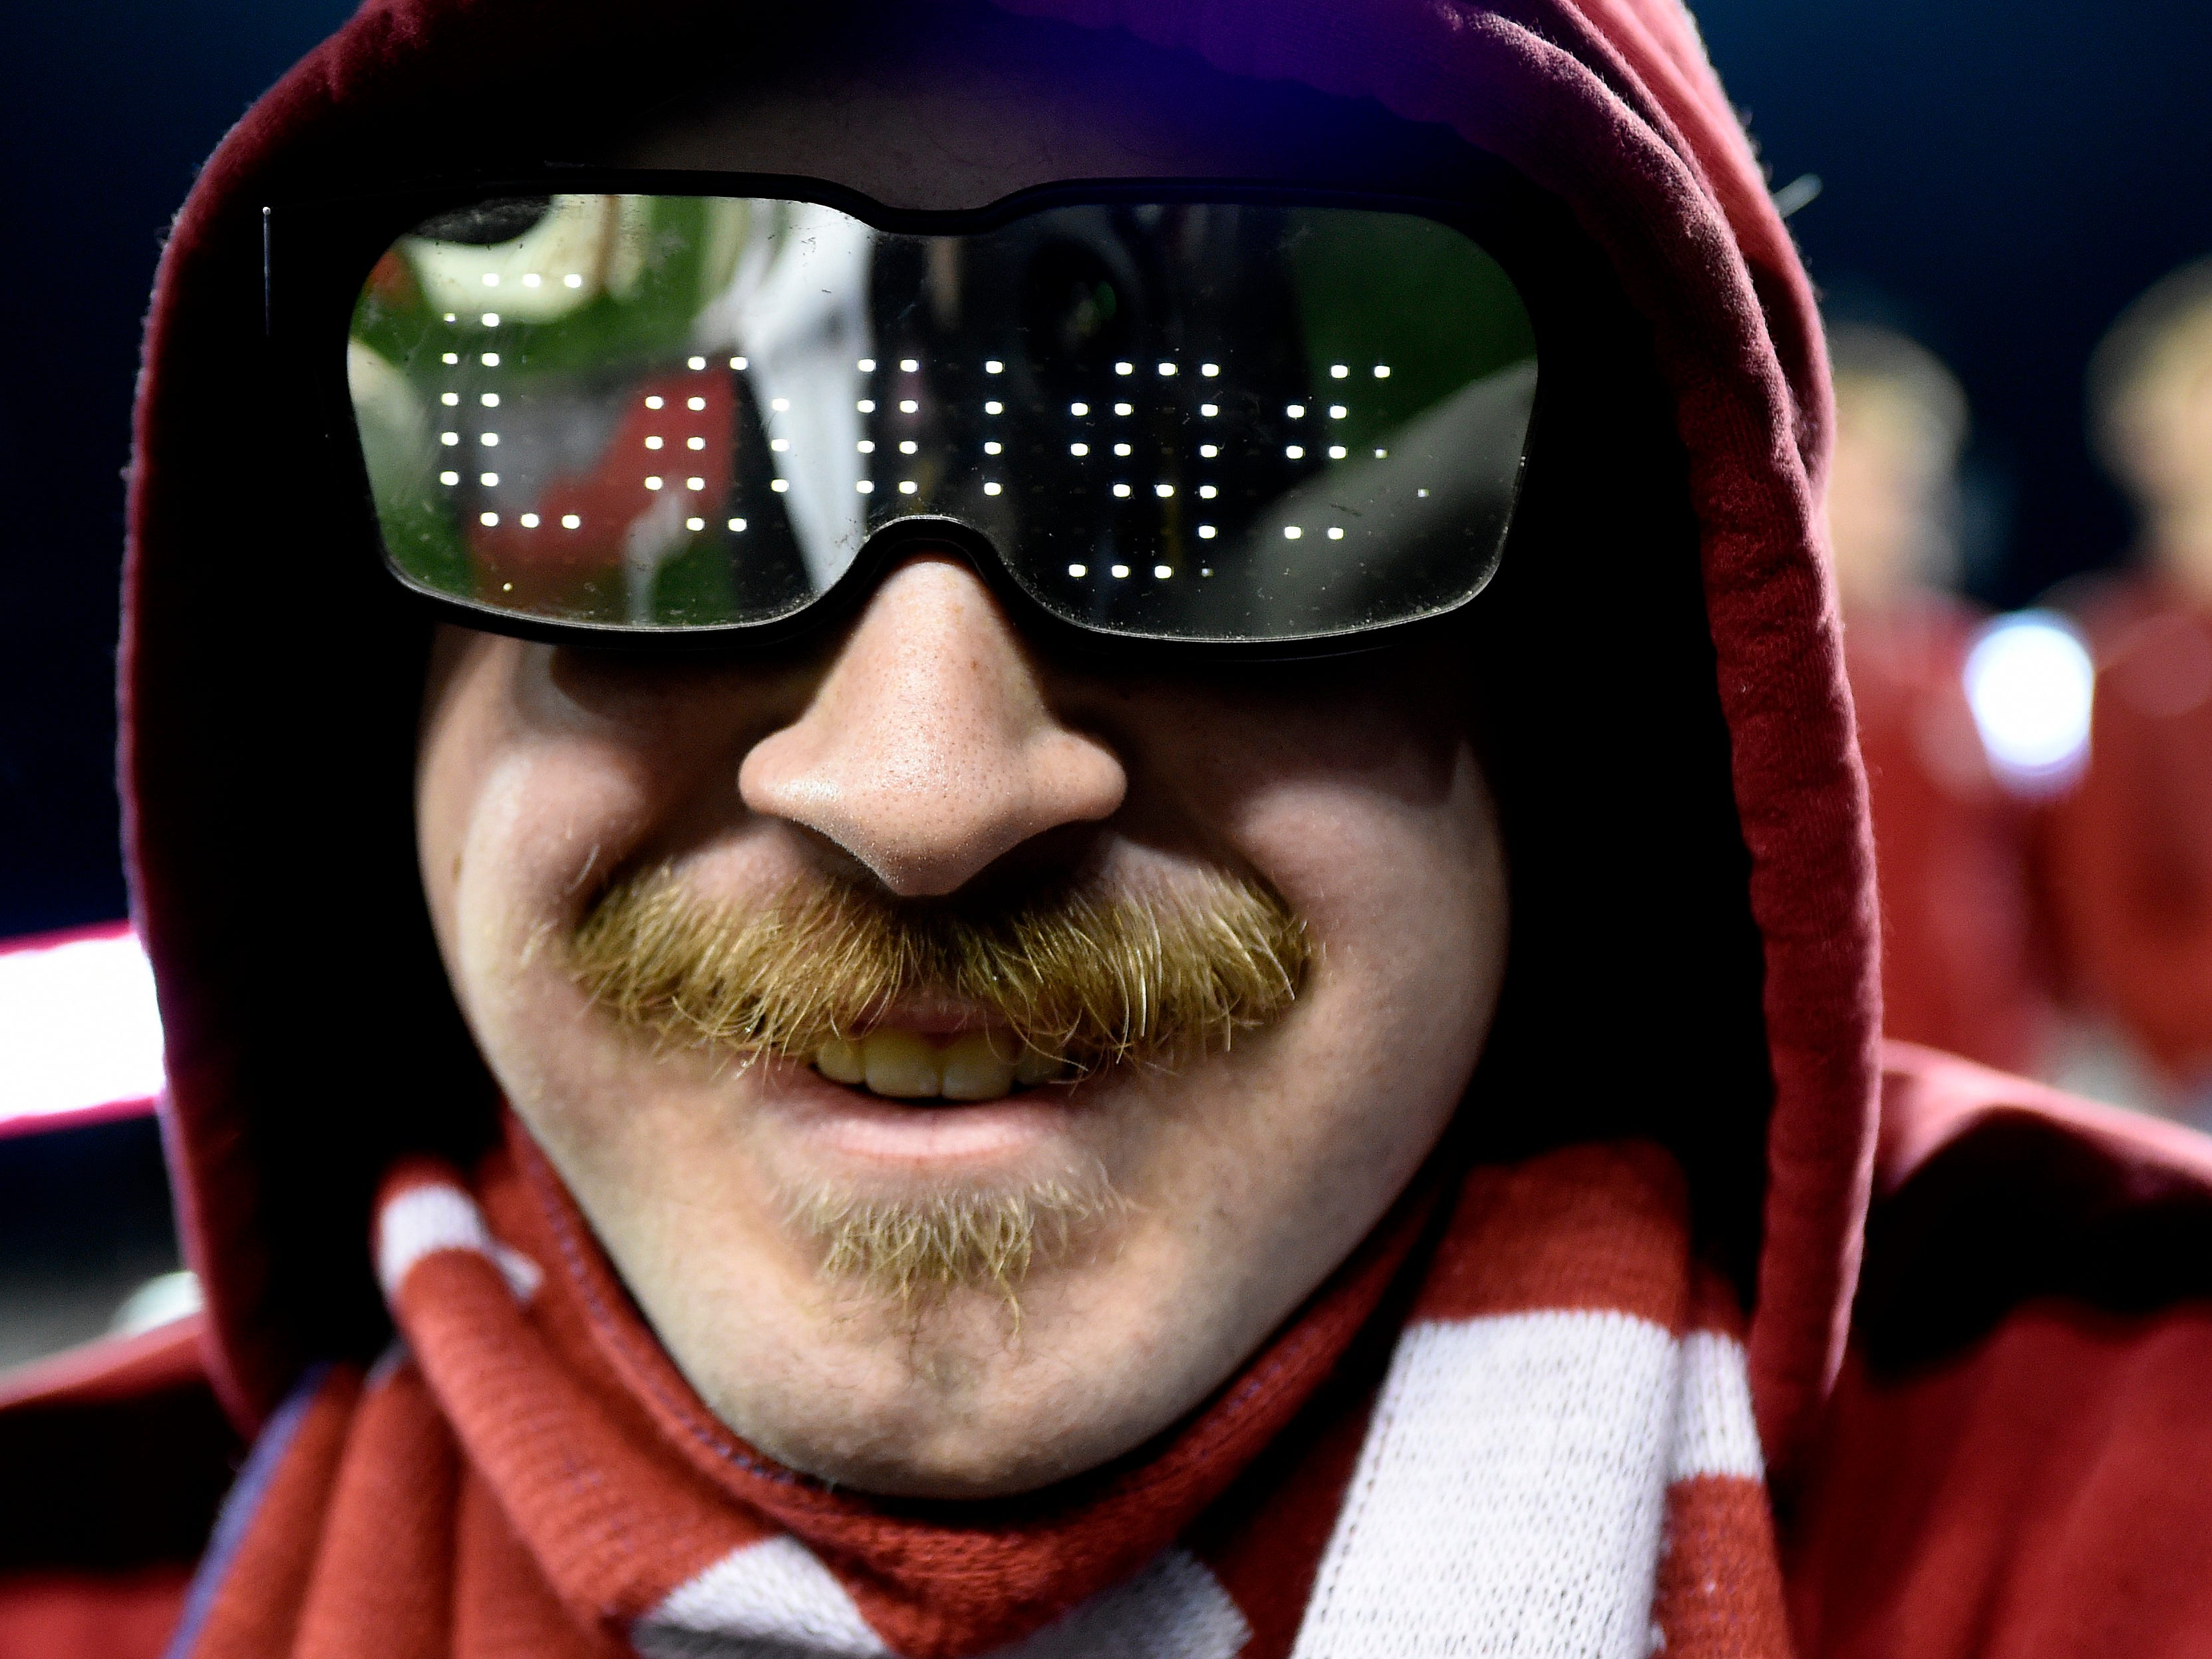 Nov 17, 2018; Pullman, WA, USA; Washington State Cougars fans looks on before a football game against the Arizona Wildcats at Martin Stadium. Mandatory Credit: James Snook-USA TODAY Sports